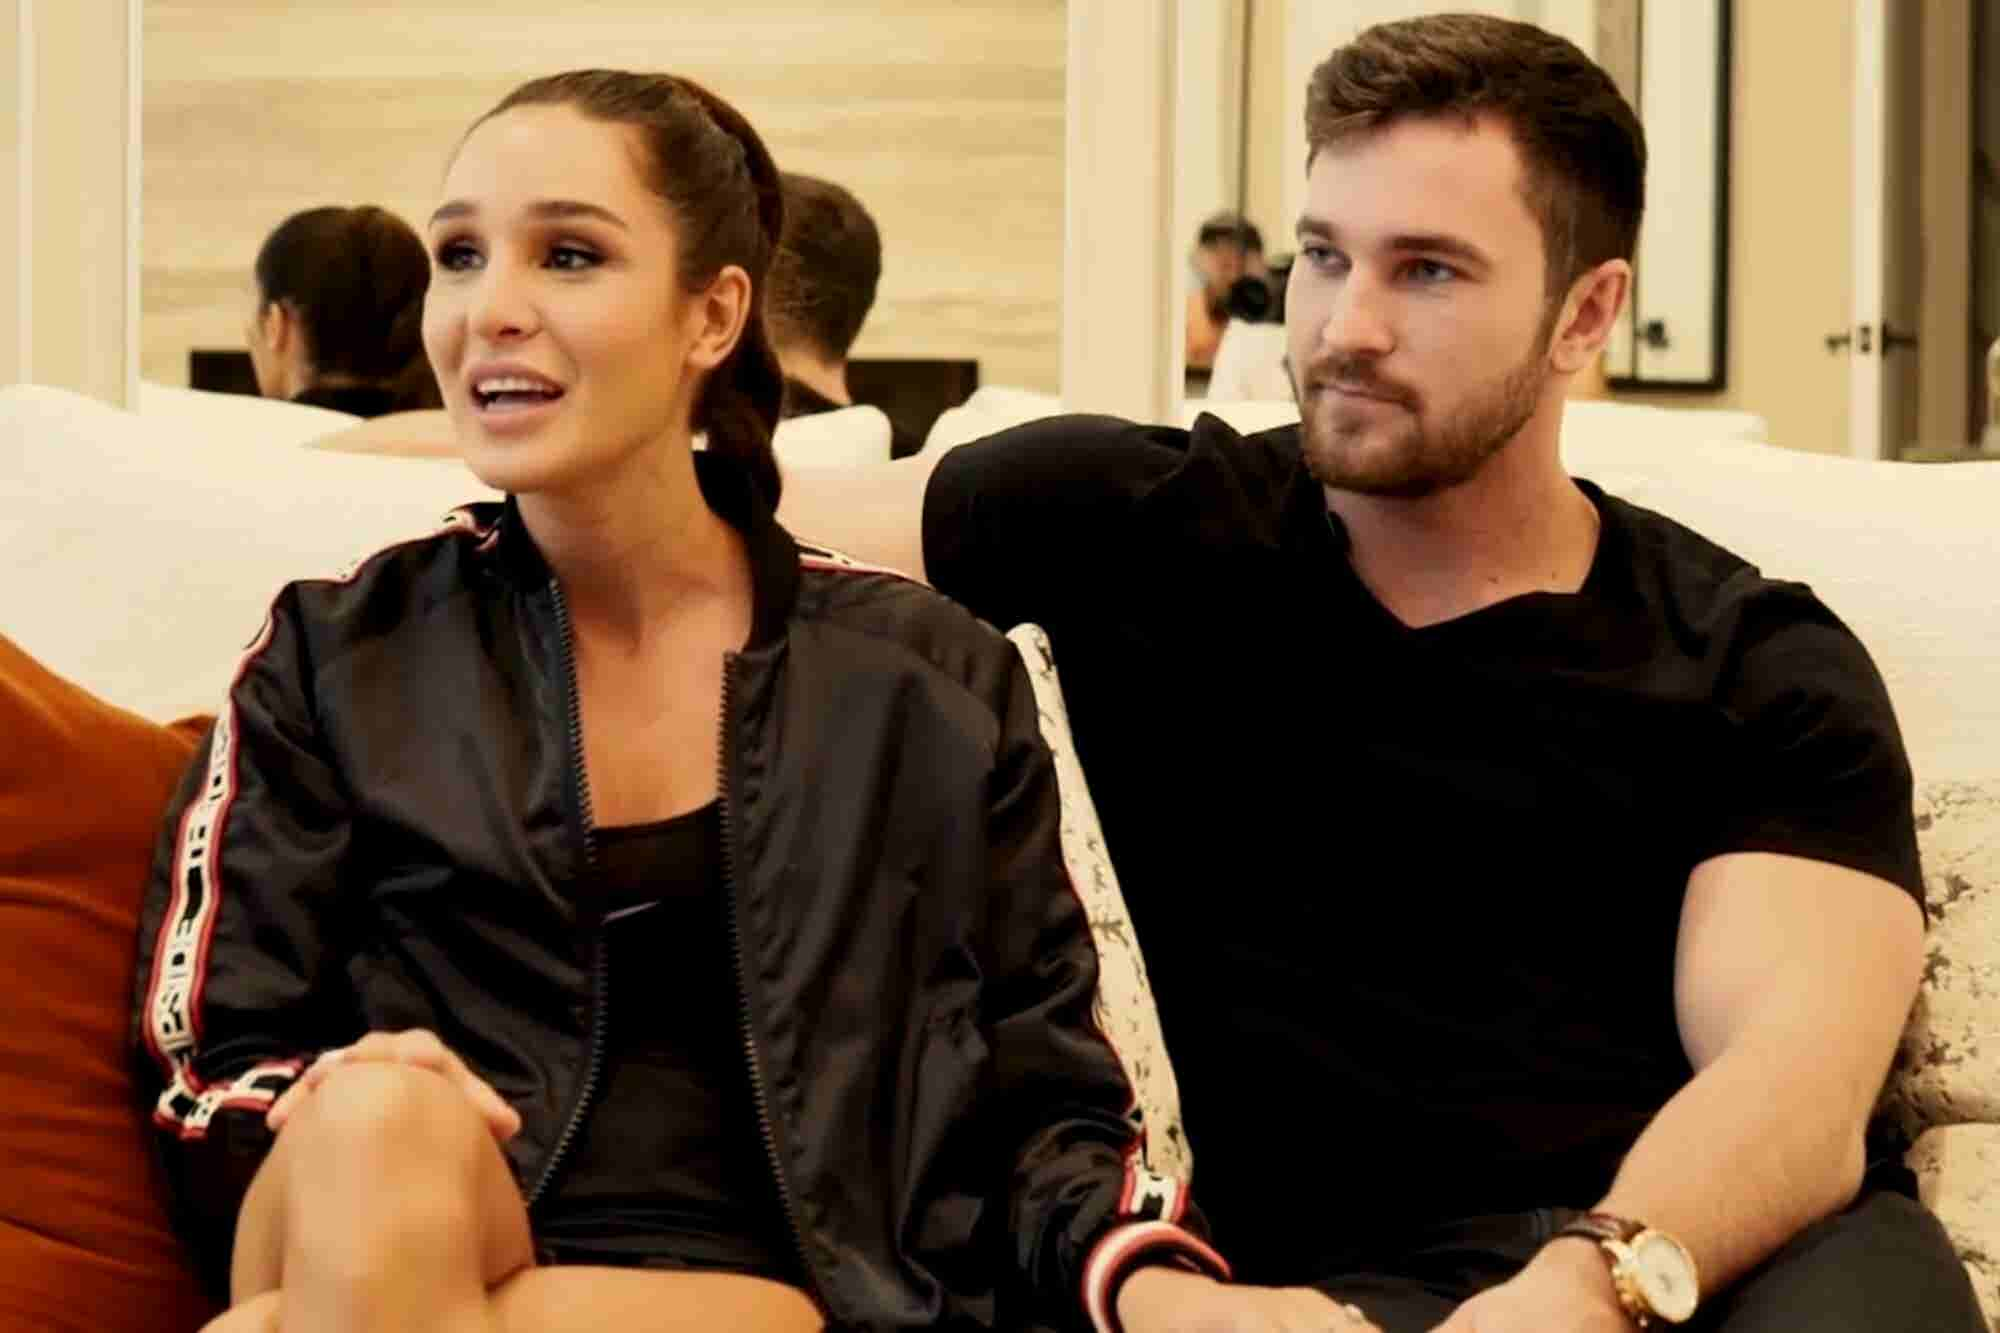 How the Sweat App's Kayla Itsines and Tobi Pearce Built a Fitness Empi...